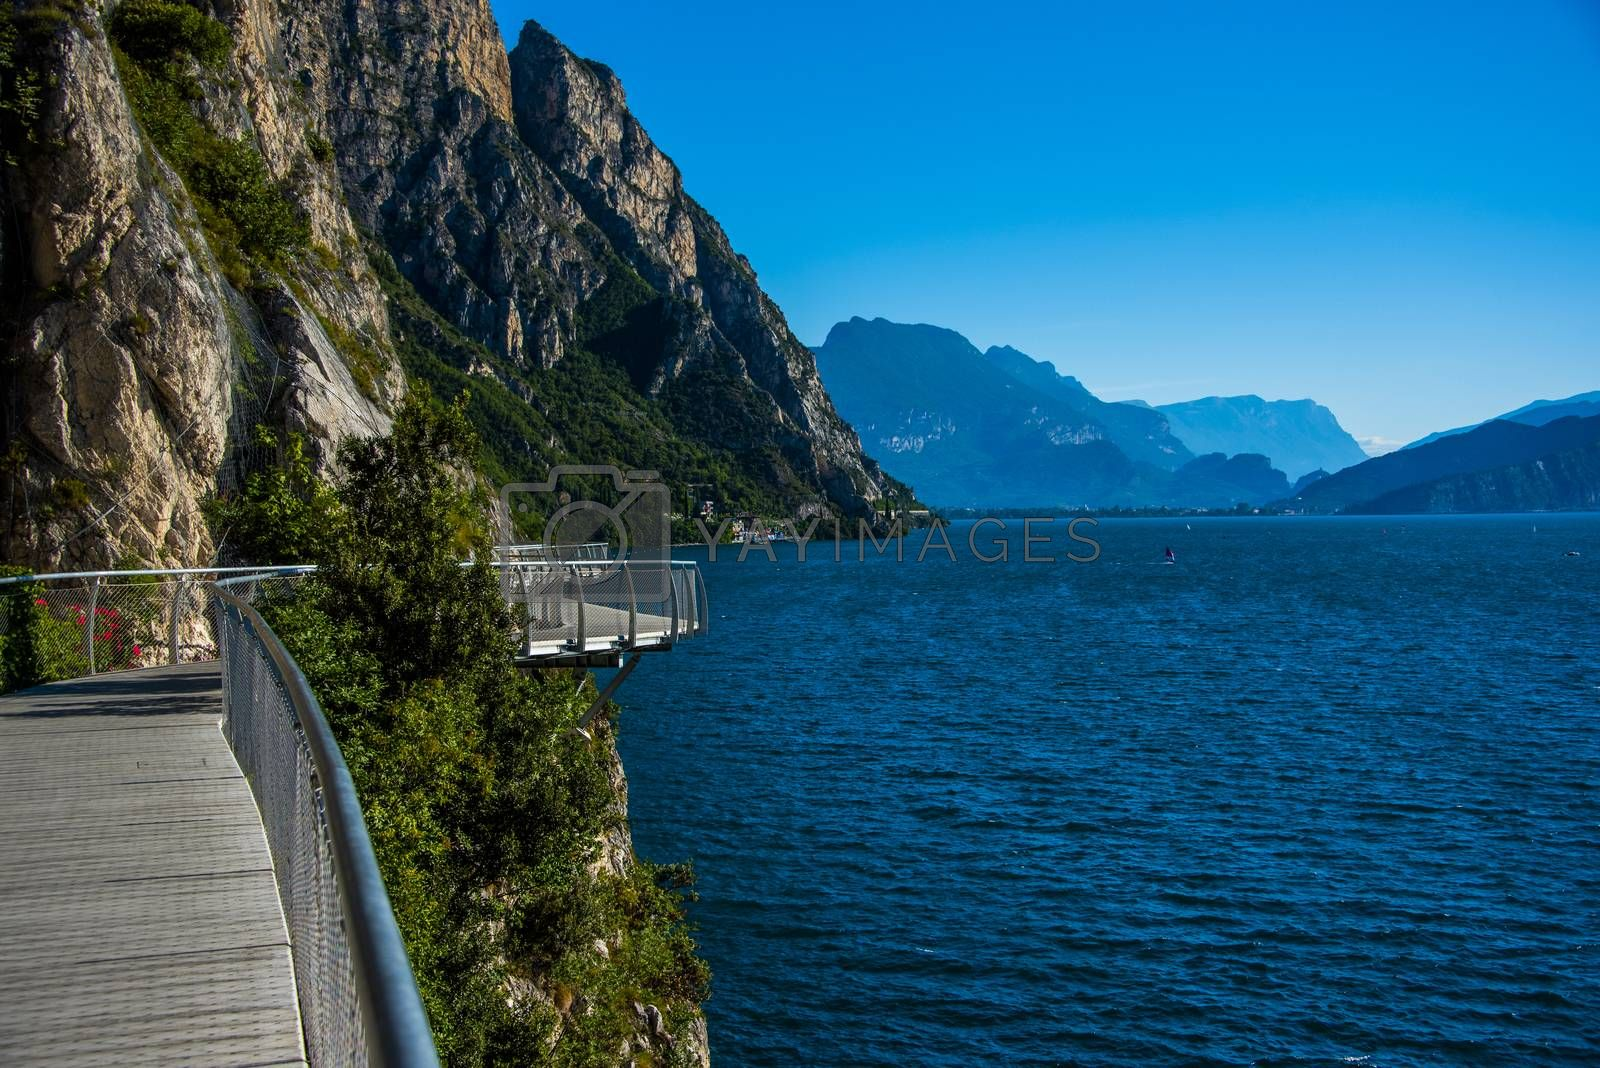 suspended walkway on Lake Garda at Limone sul Garda, Brescia Italy